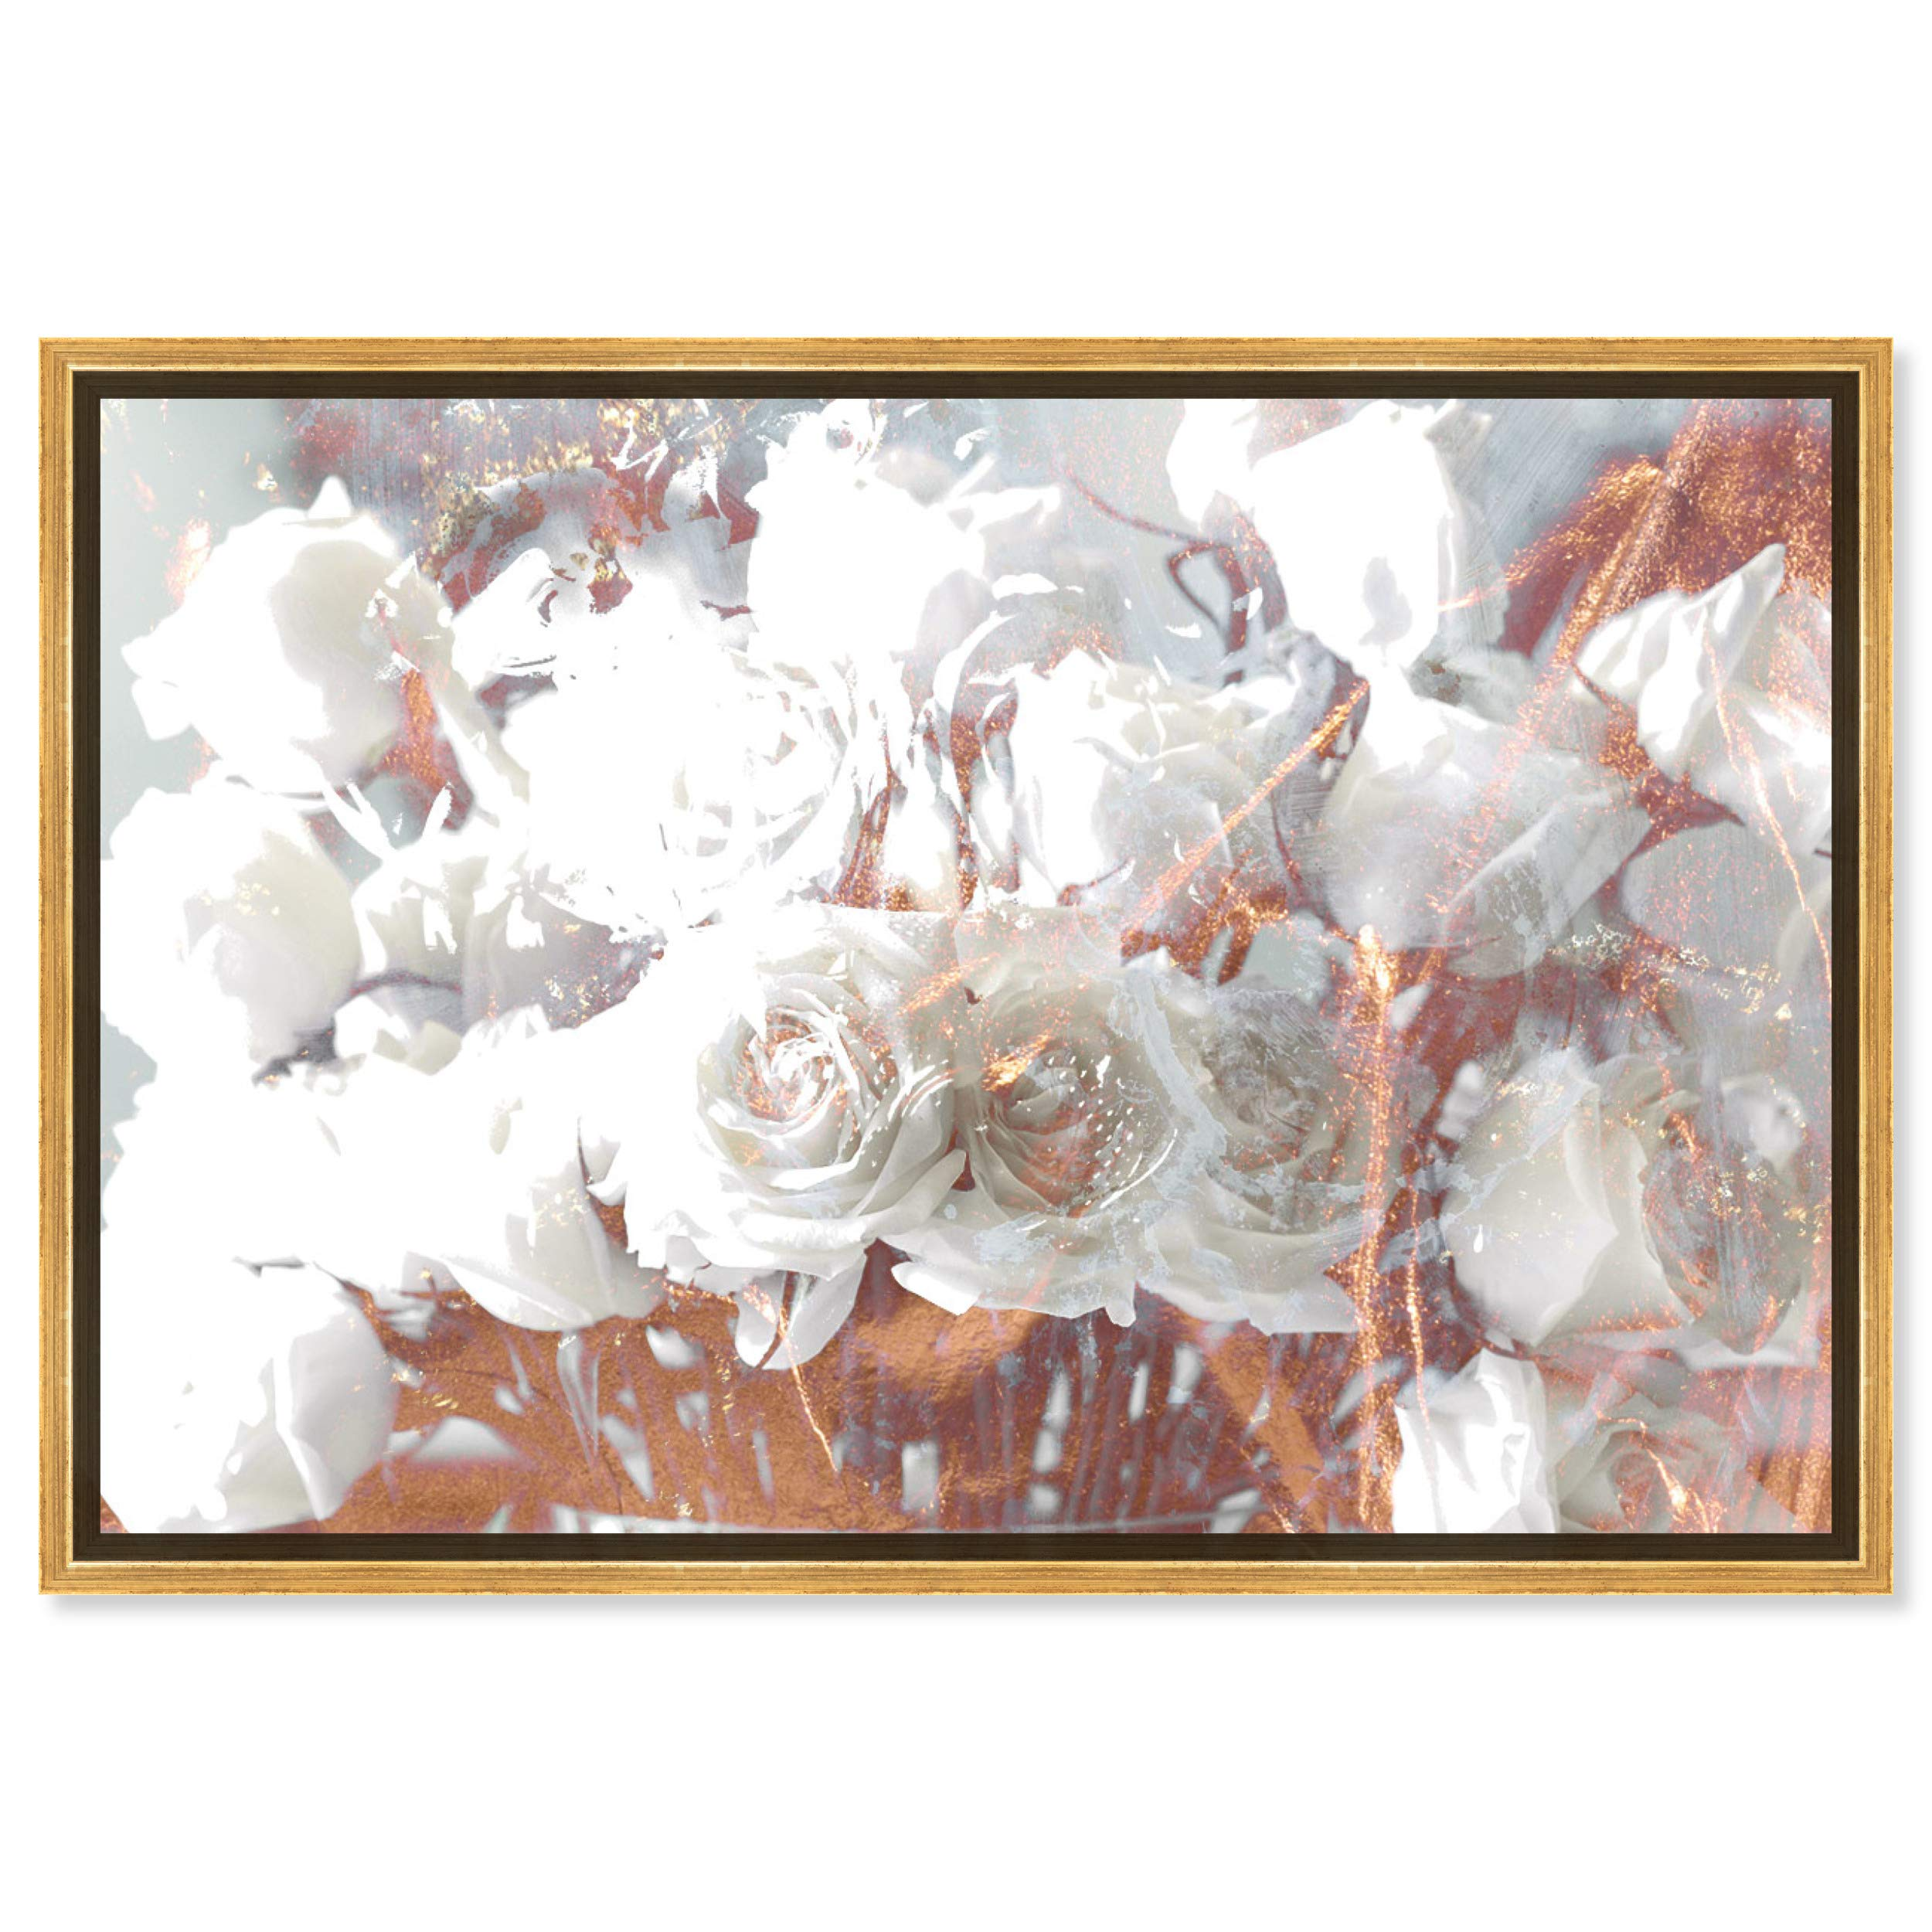 Floral and Botanical Framed Wall Art Canvas Prints 'Rose Gold Feast' Florals